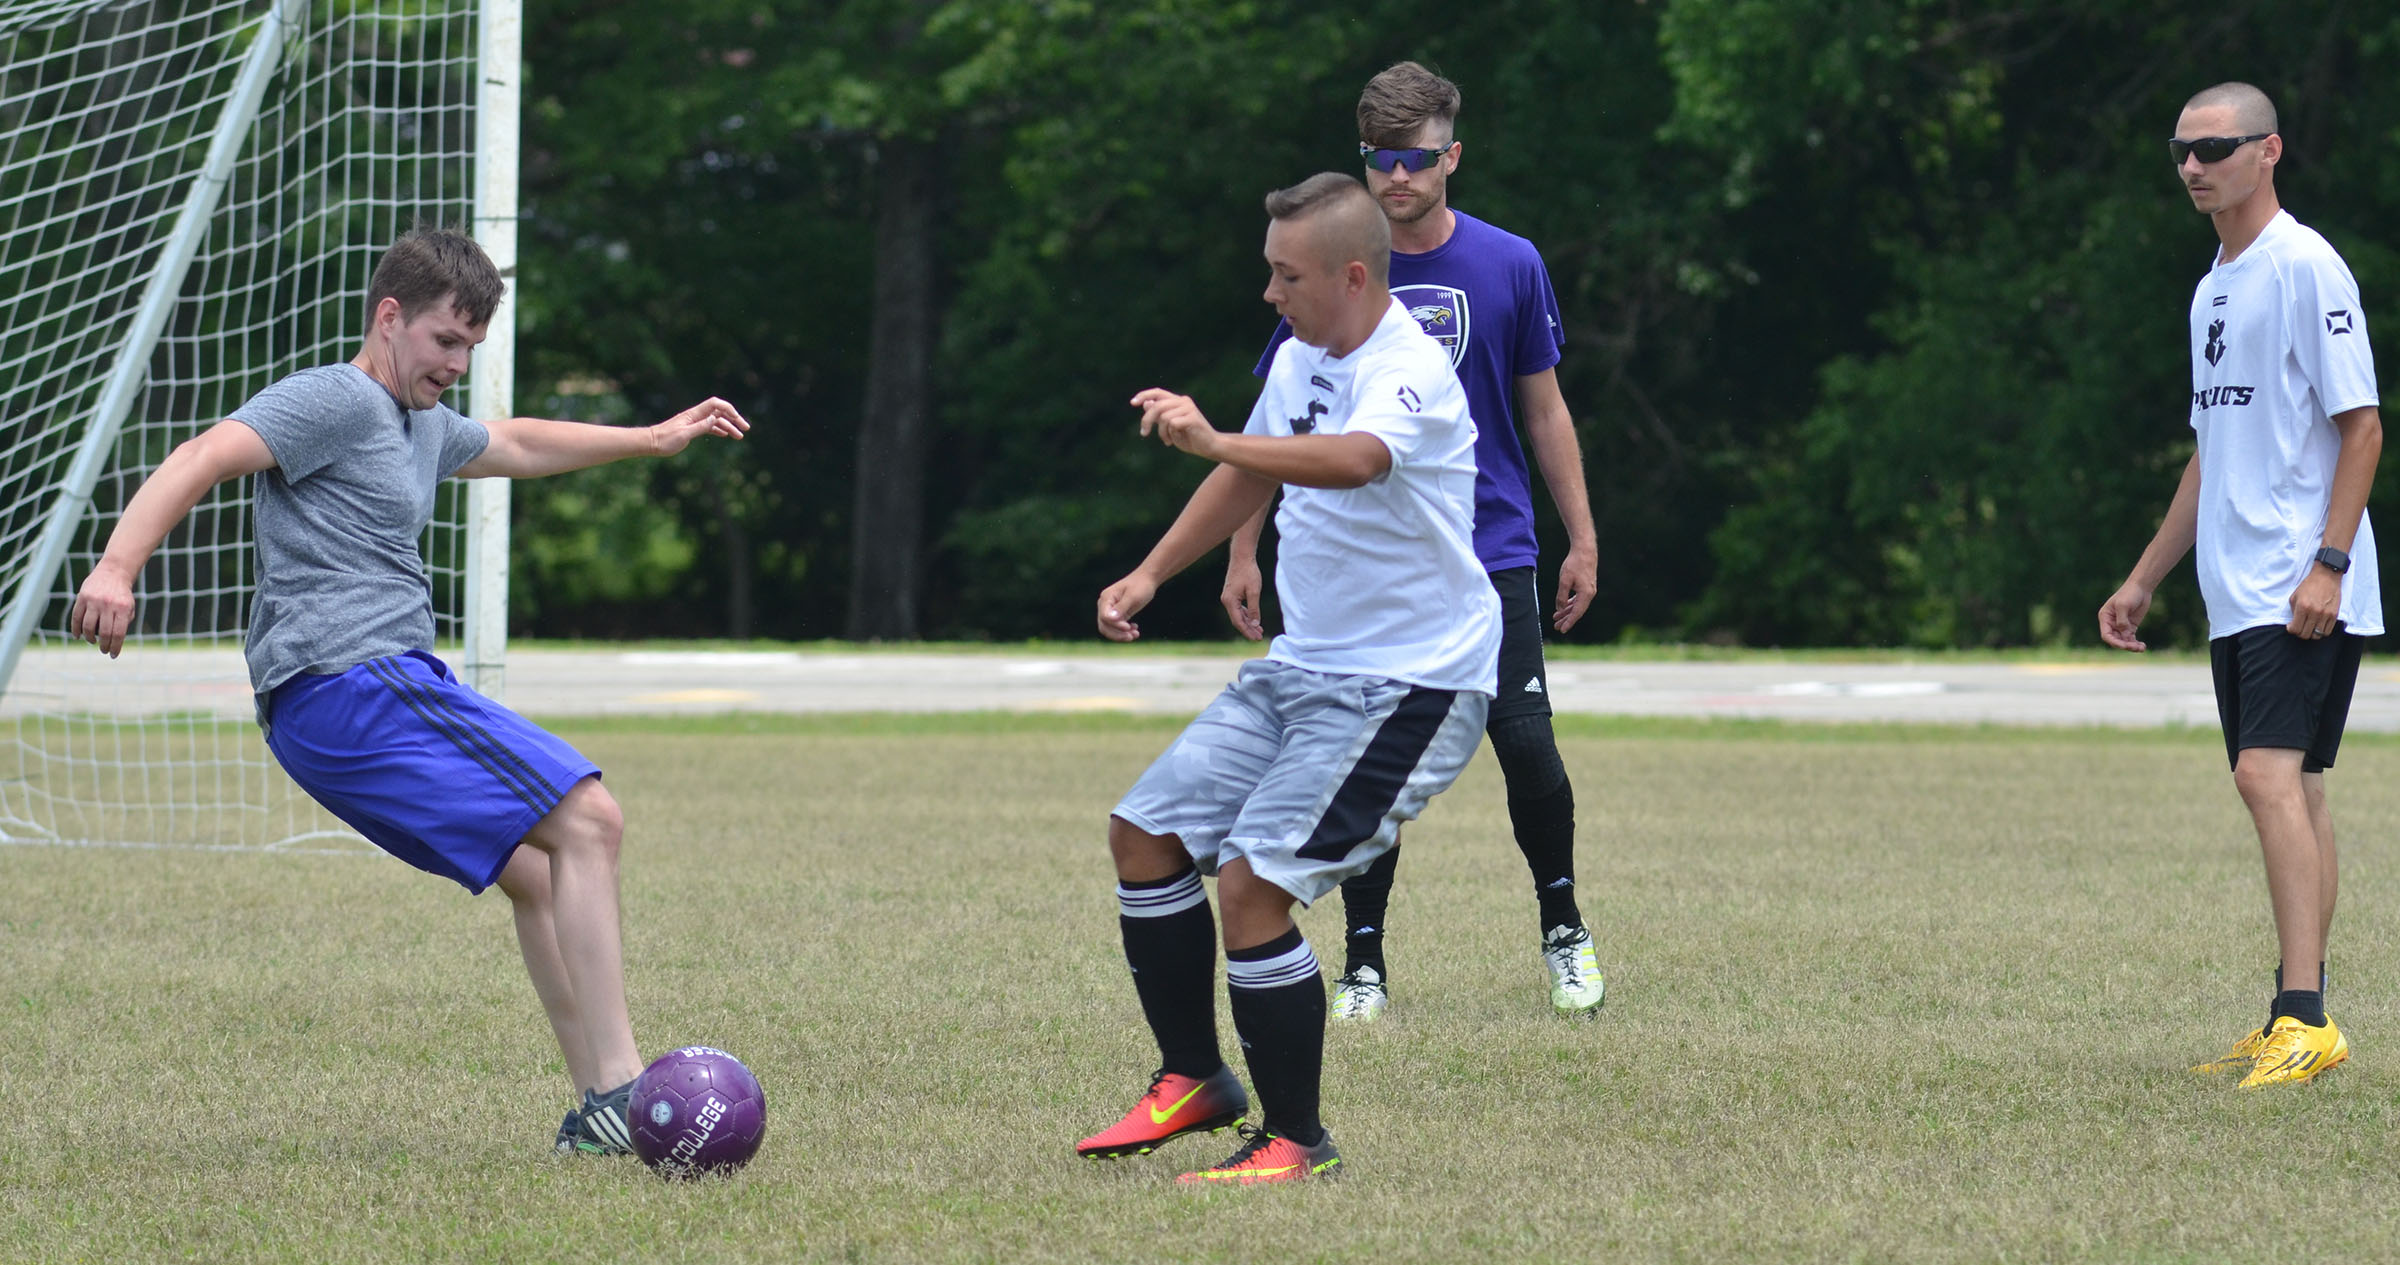 CHS soccer alumni player Jeff Muncie, at left, battles senior Cody Davis for the ball.